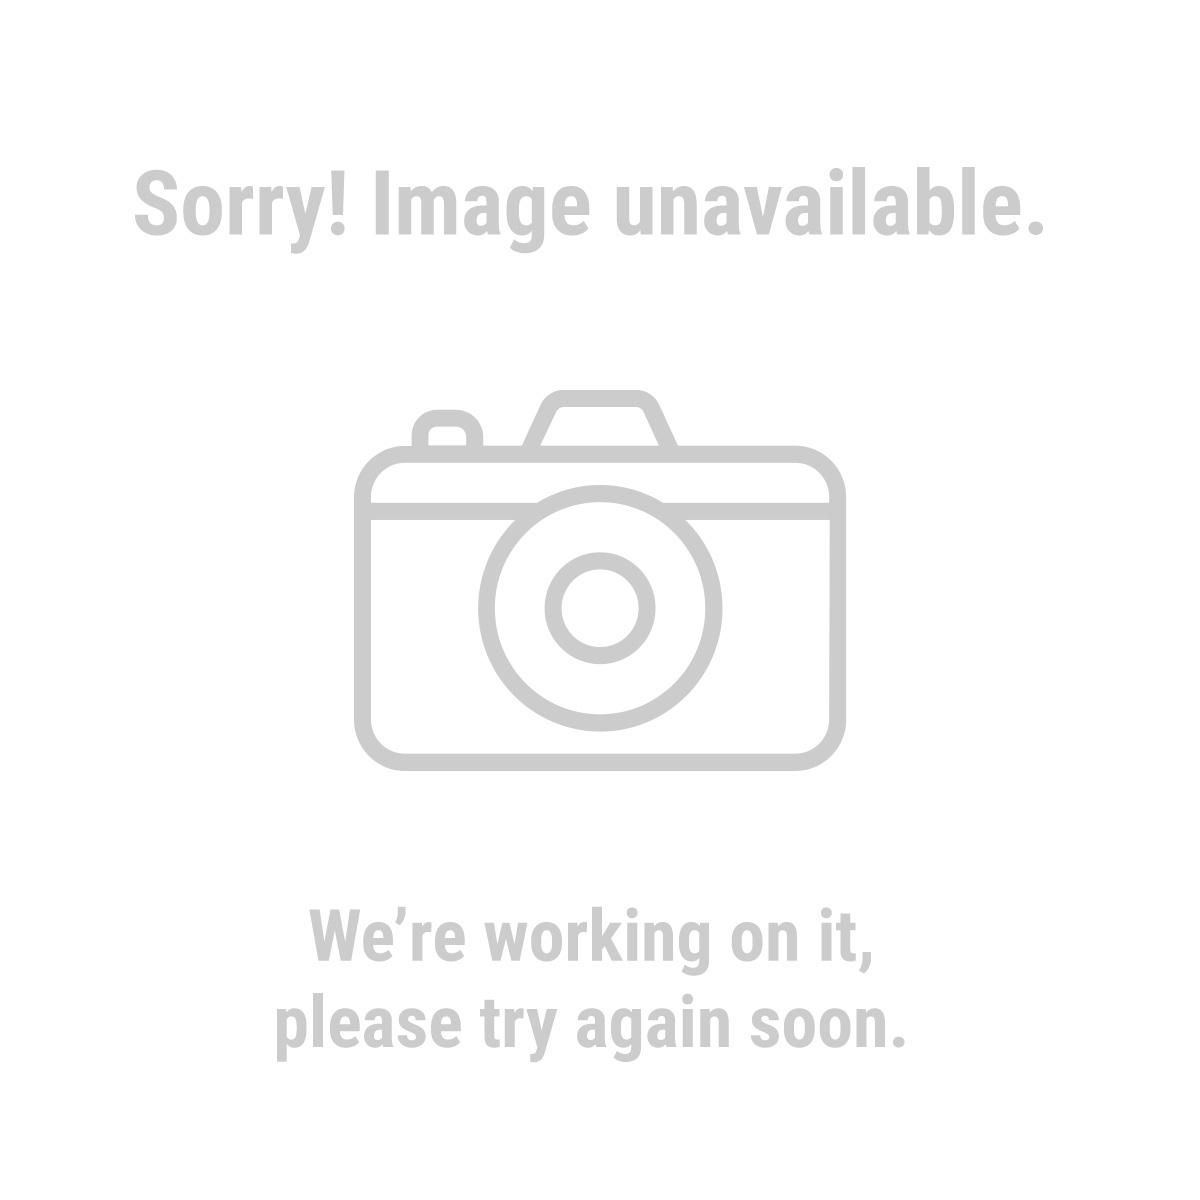 Haul-Master 69591 1000 Lb. Steel Loading Ramps, Set of Two